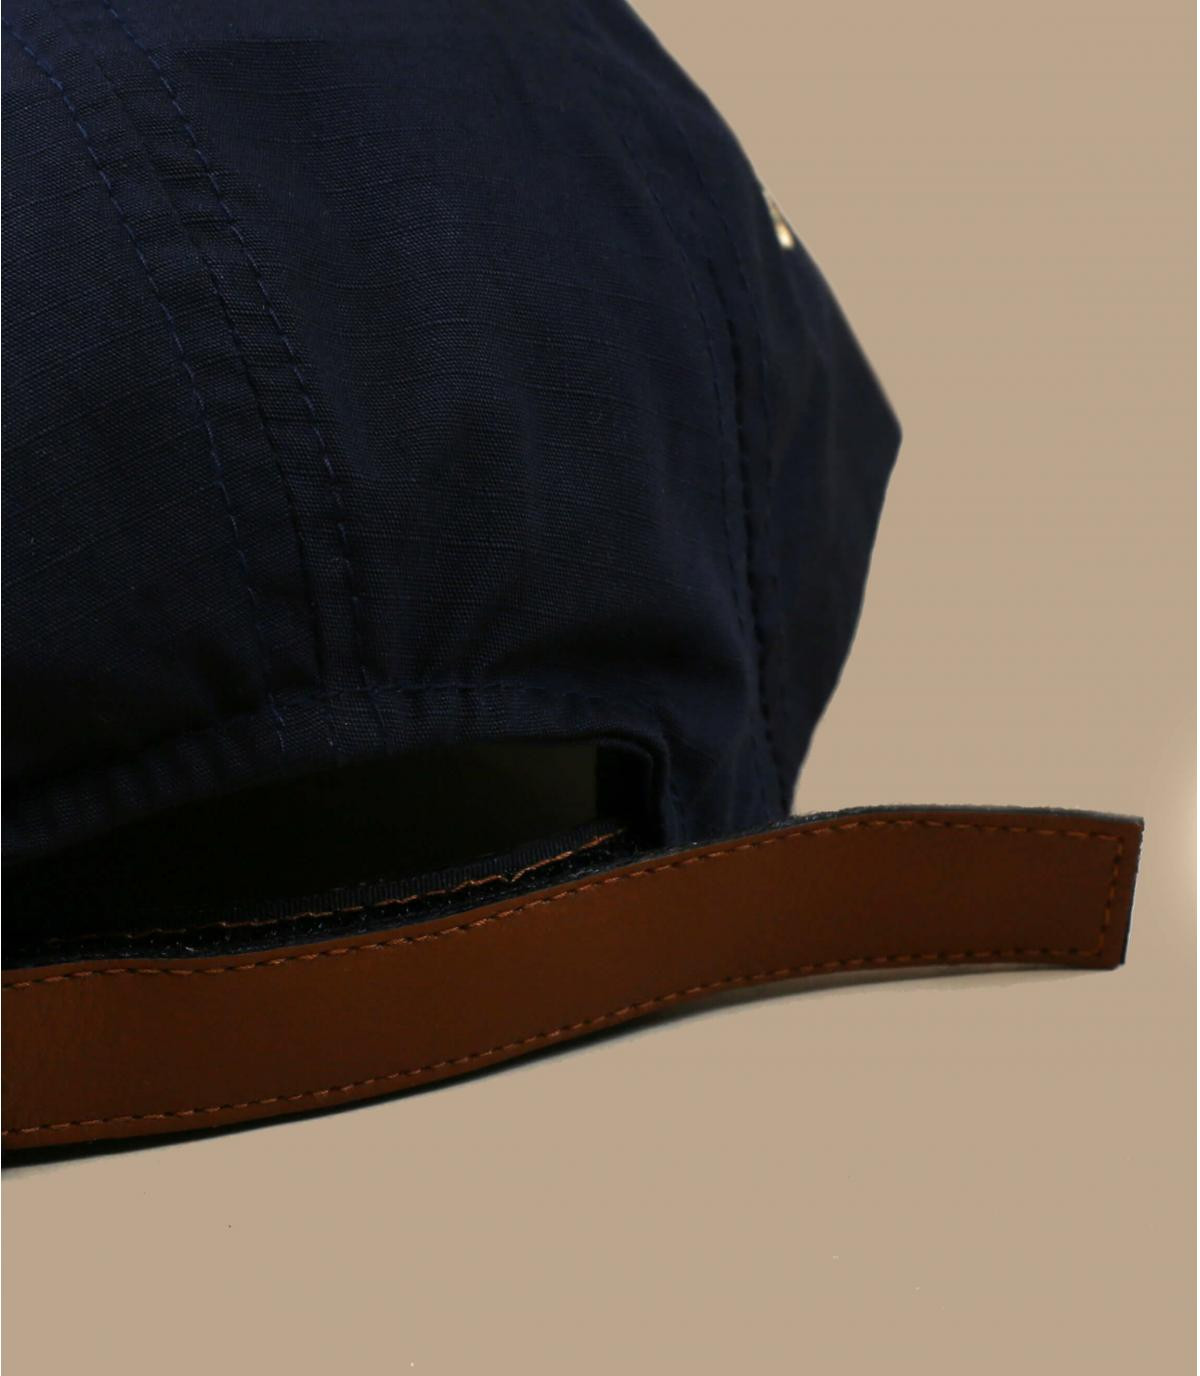 Détails 5 Panels Discovery navy - image 3